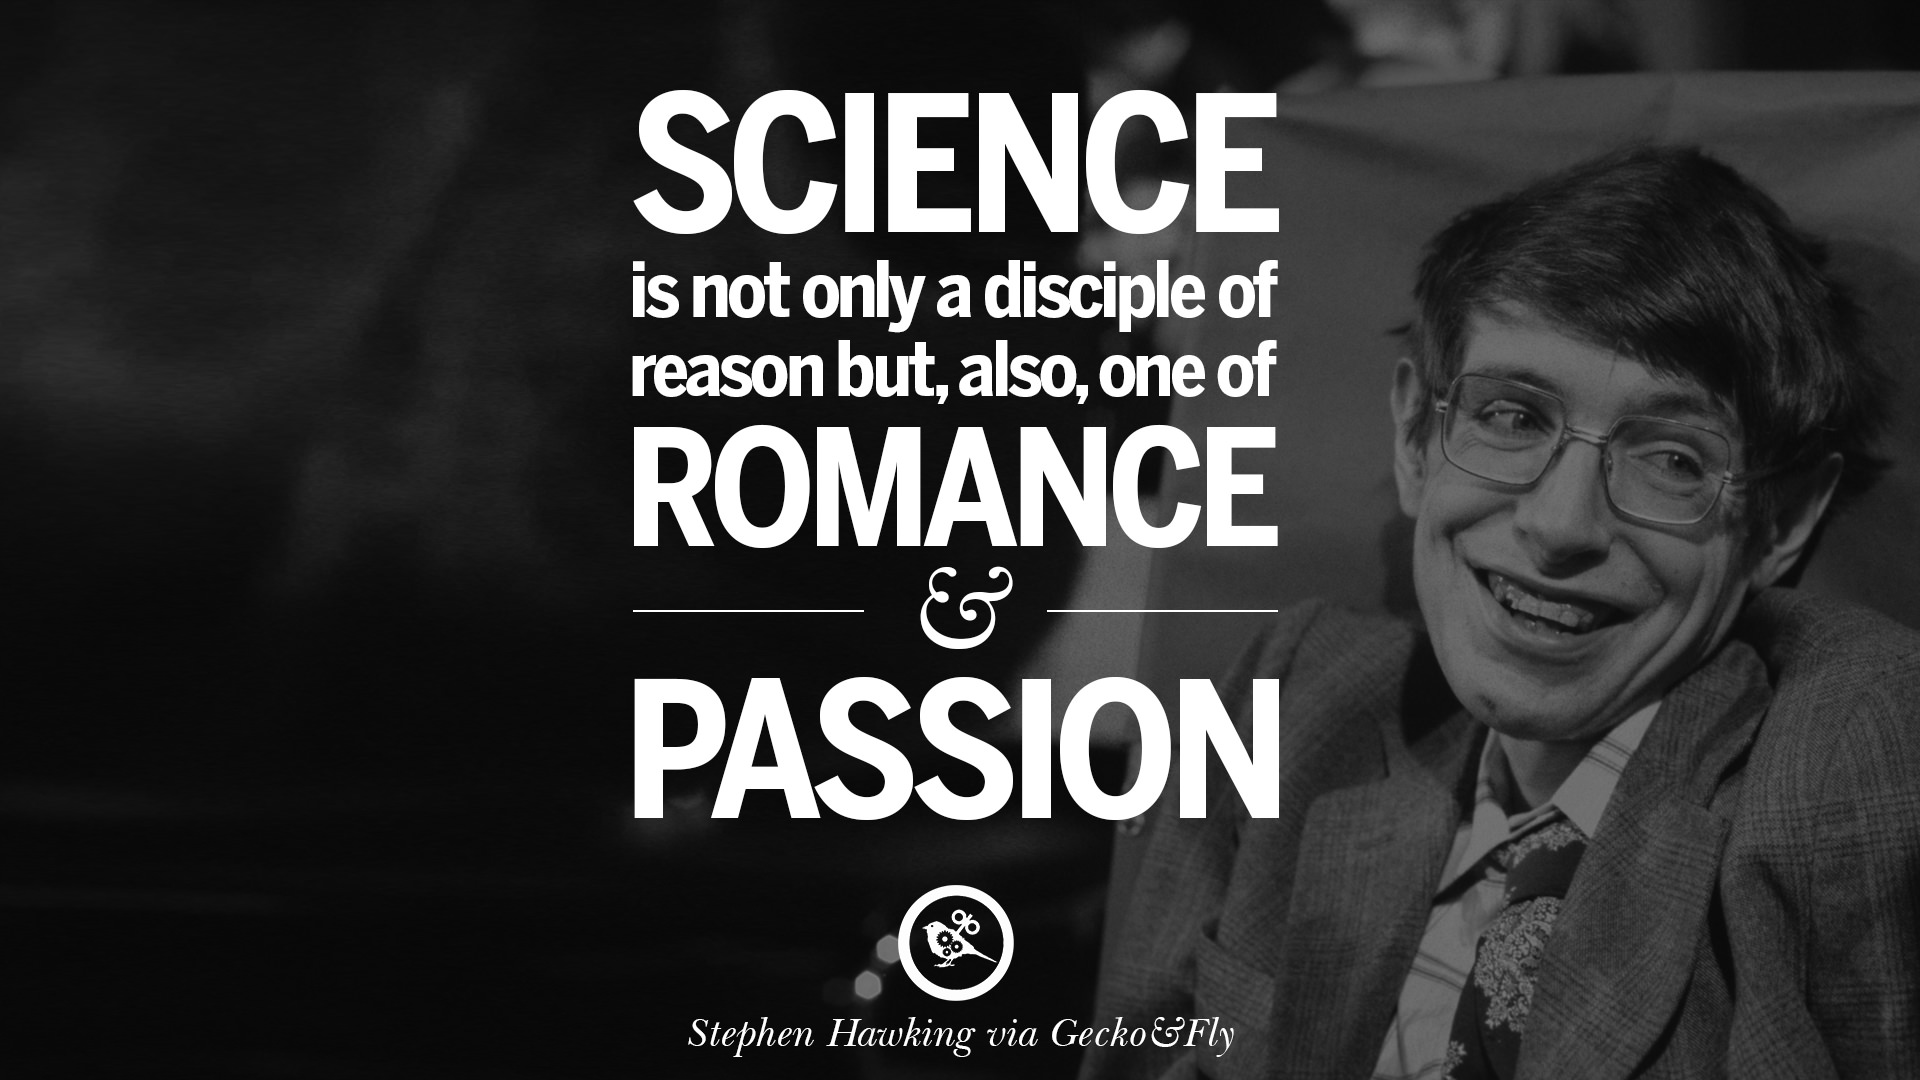 Cosmos Quotes Wallpaper 16 Quotes By Stephen Hawking On The Theory Of Everything